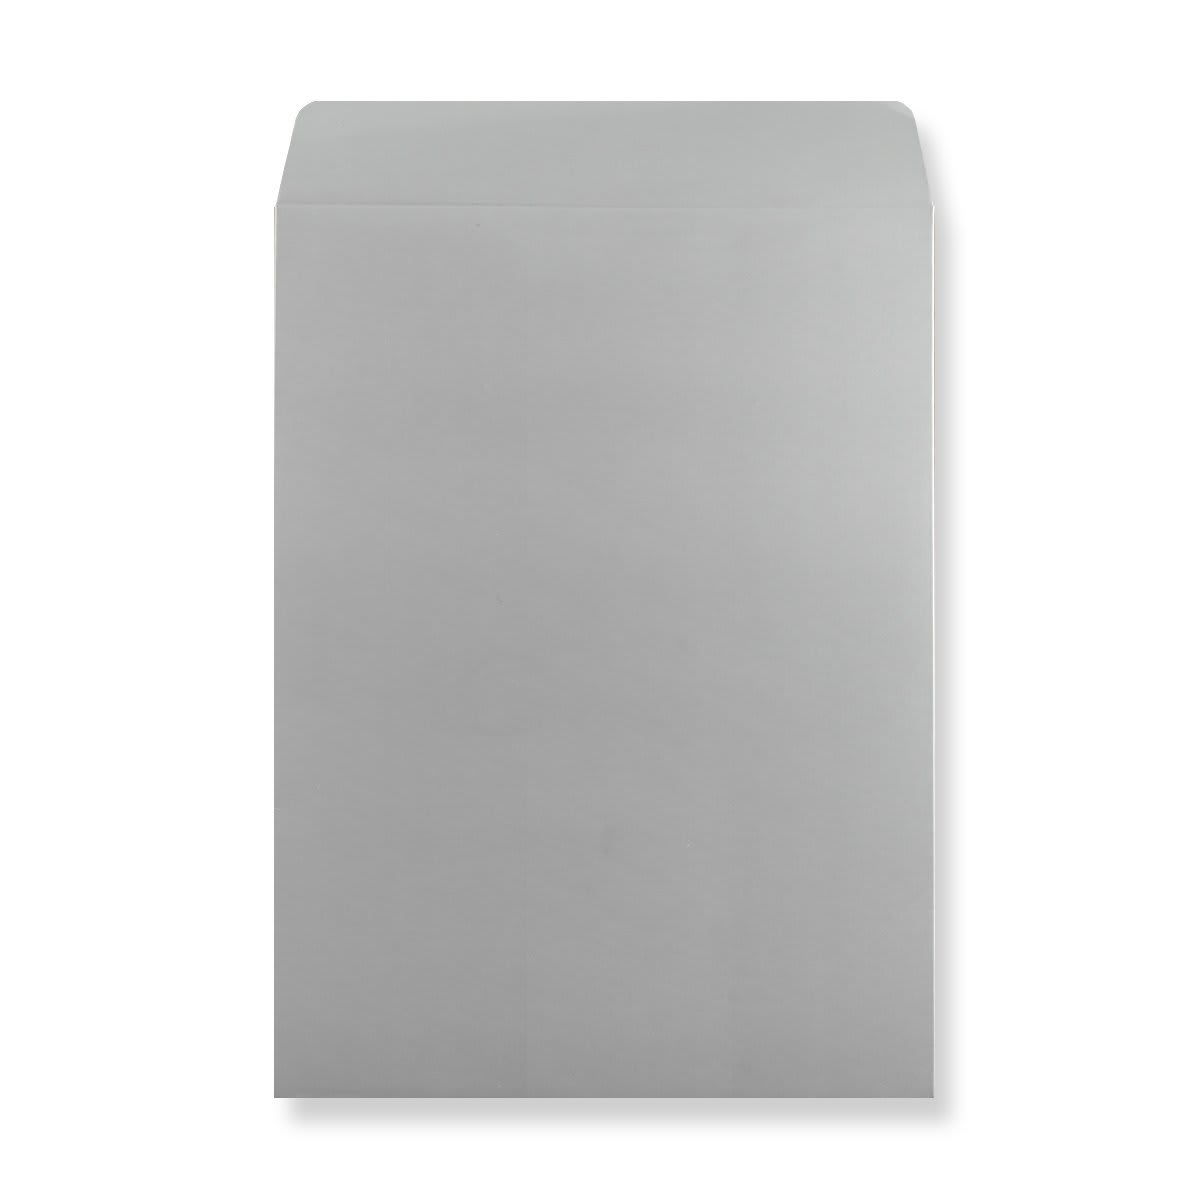 C3 SILVER ALL BOARD ENVELOPES